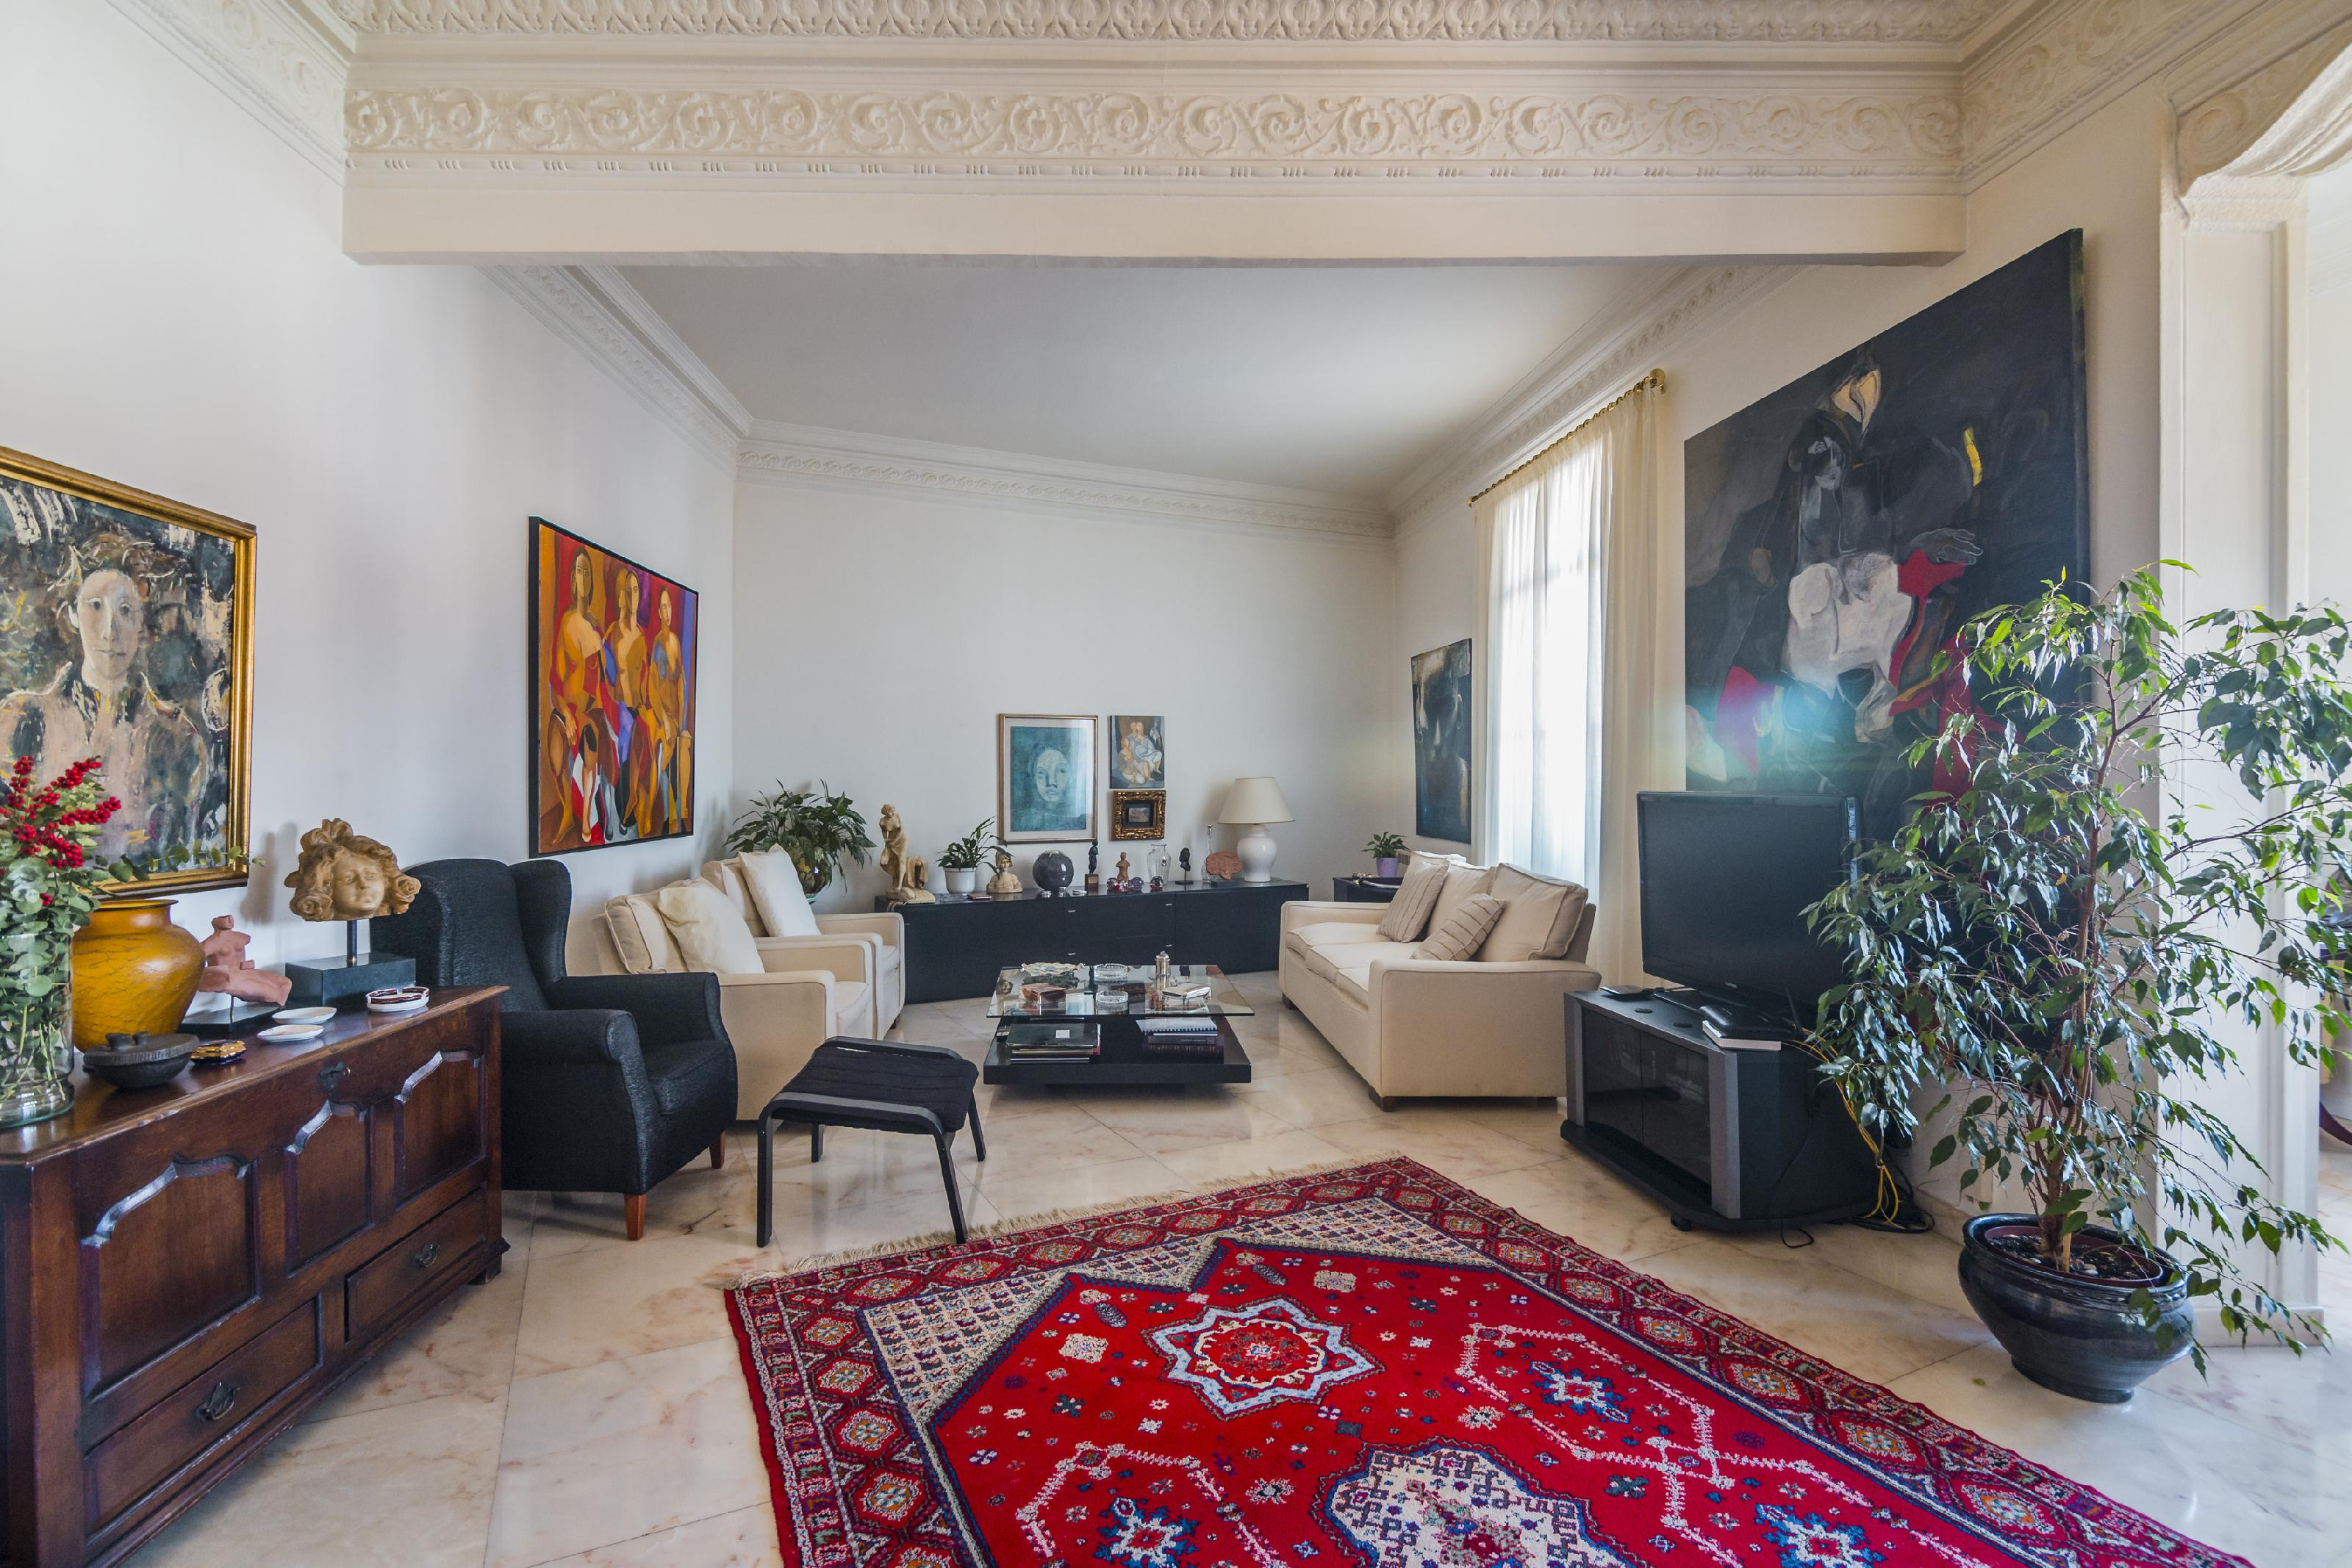 218503 Penthouse for sale in Sarrià-Sant Gervasi, Sant Gervasi-Galvany 18